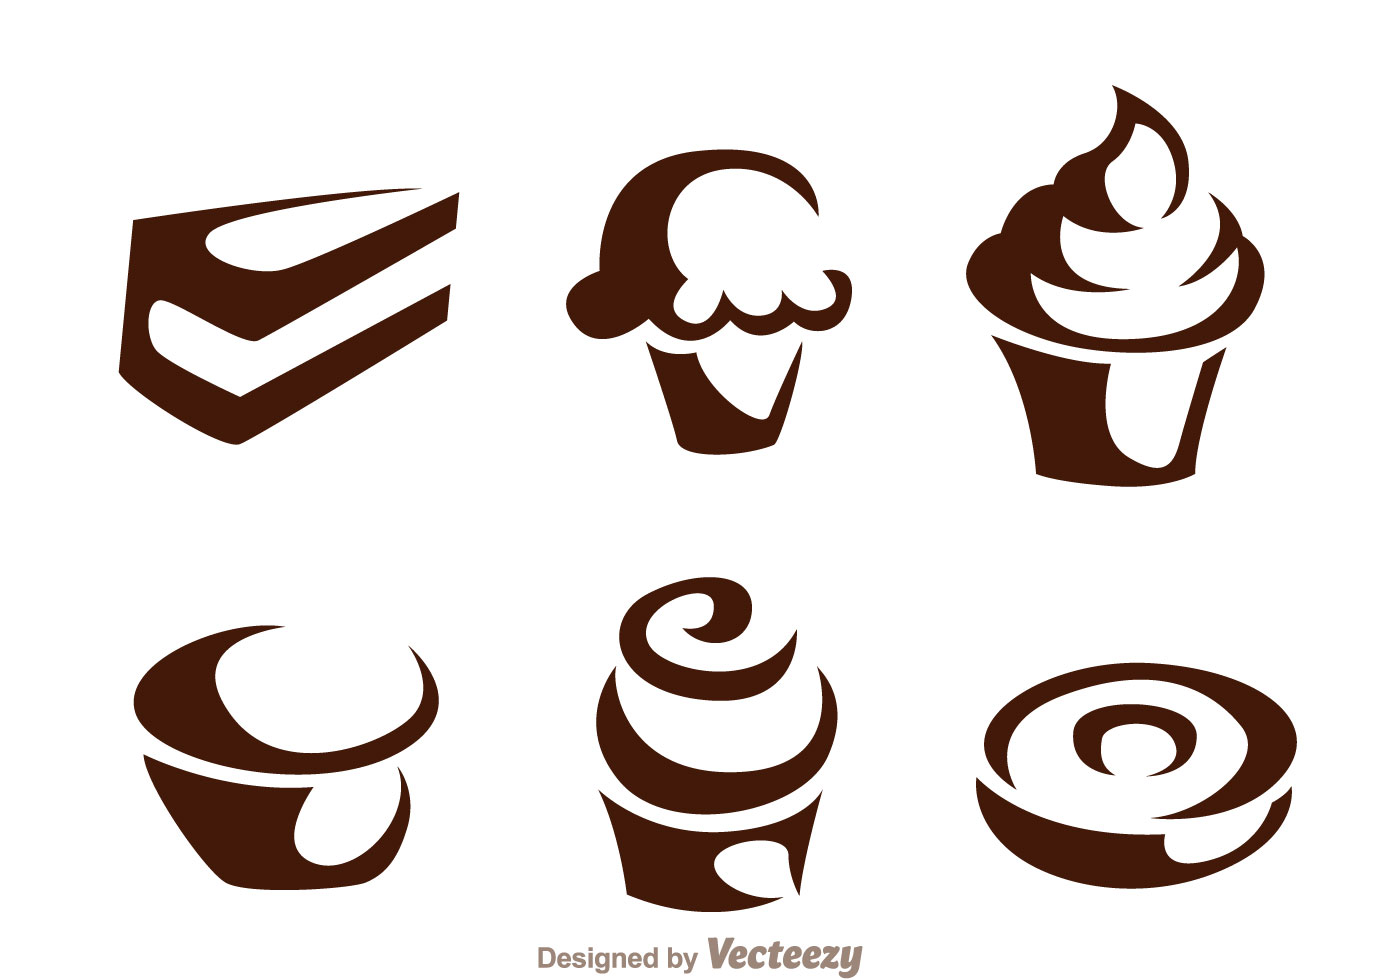 Cake Pictures Vector : Cake Icons - Download Free Vector Art, Stock Graphics & Images